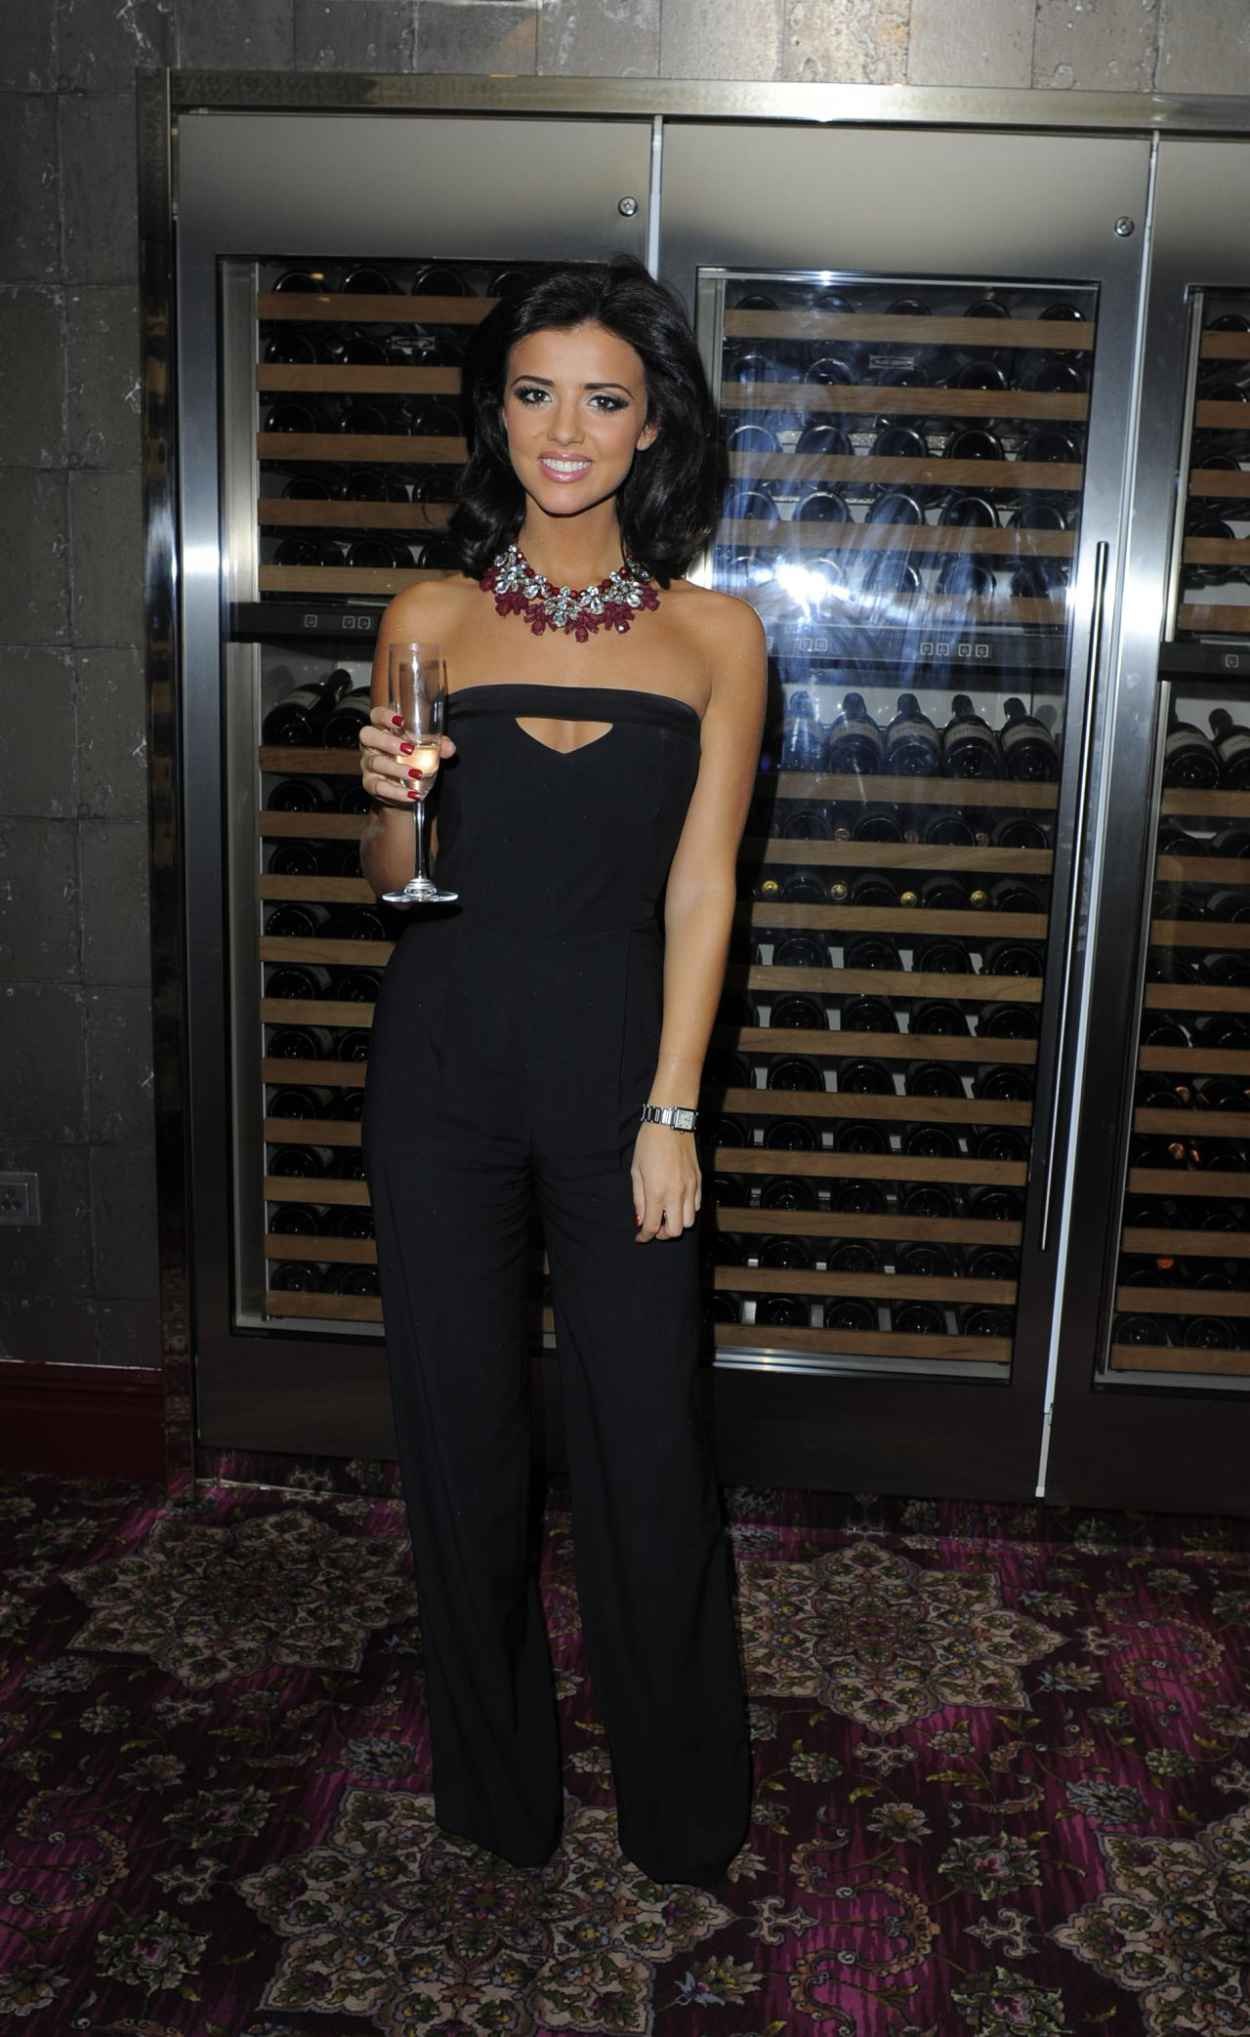 Lucy Mecklenburgh at Official Xmas Party - Sub Zero Club - December 2015-1